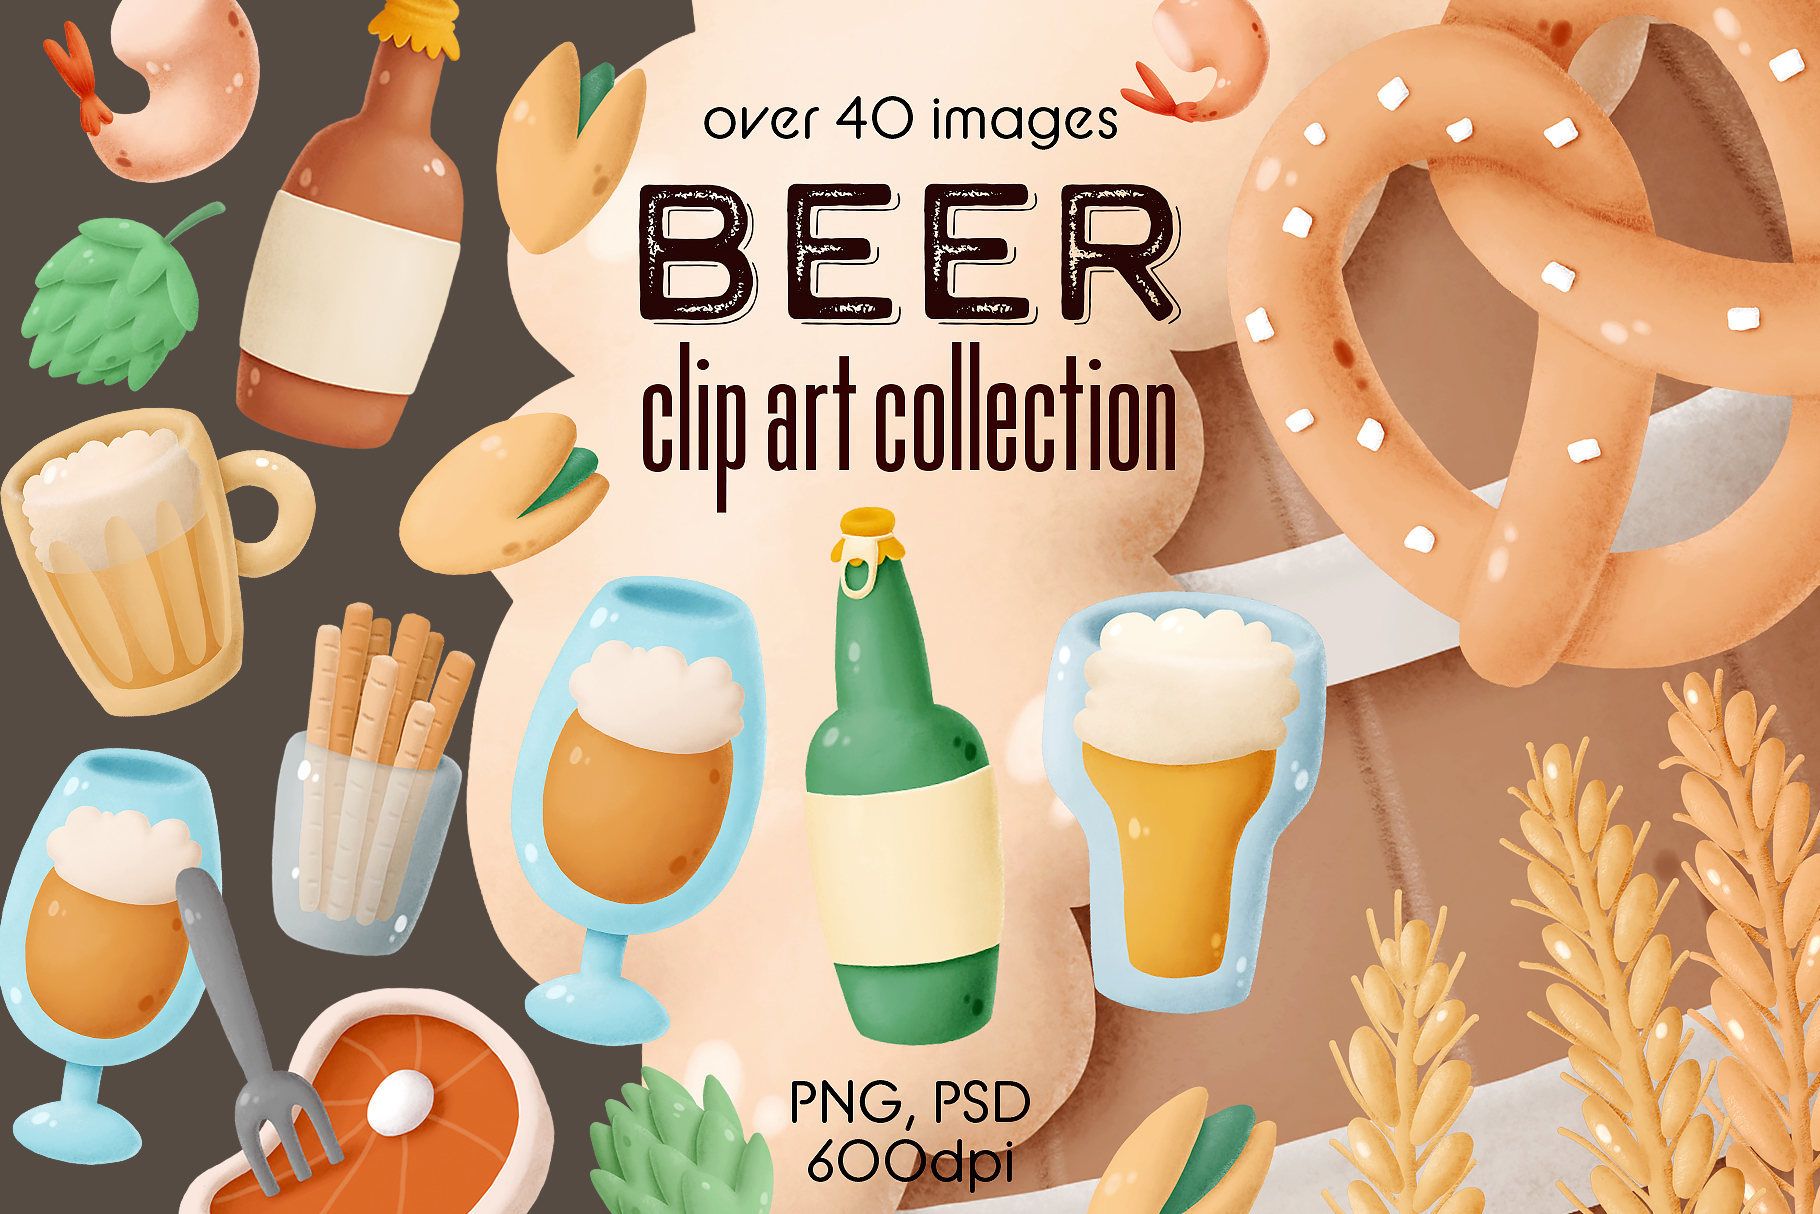 Beer clip art collection example image 1